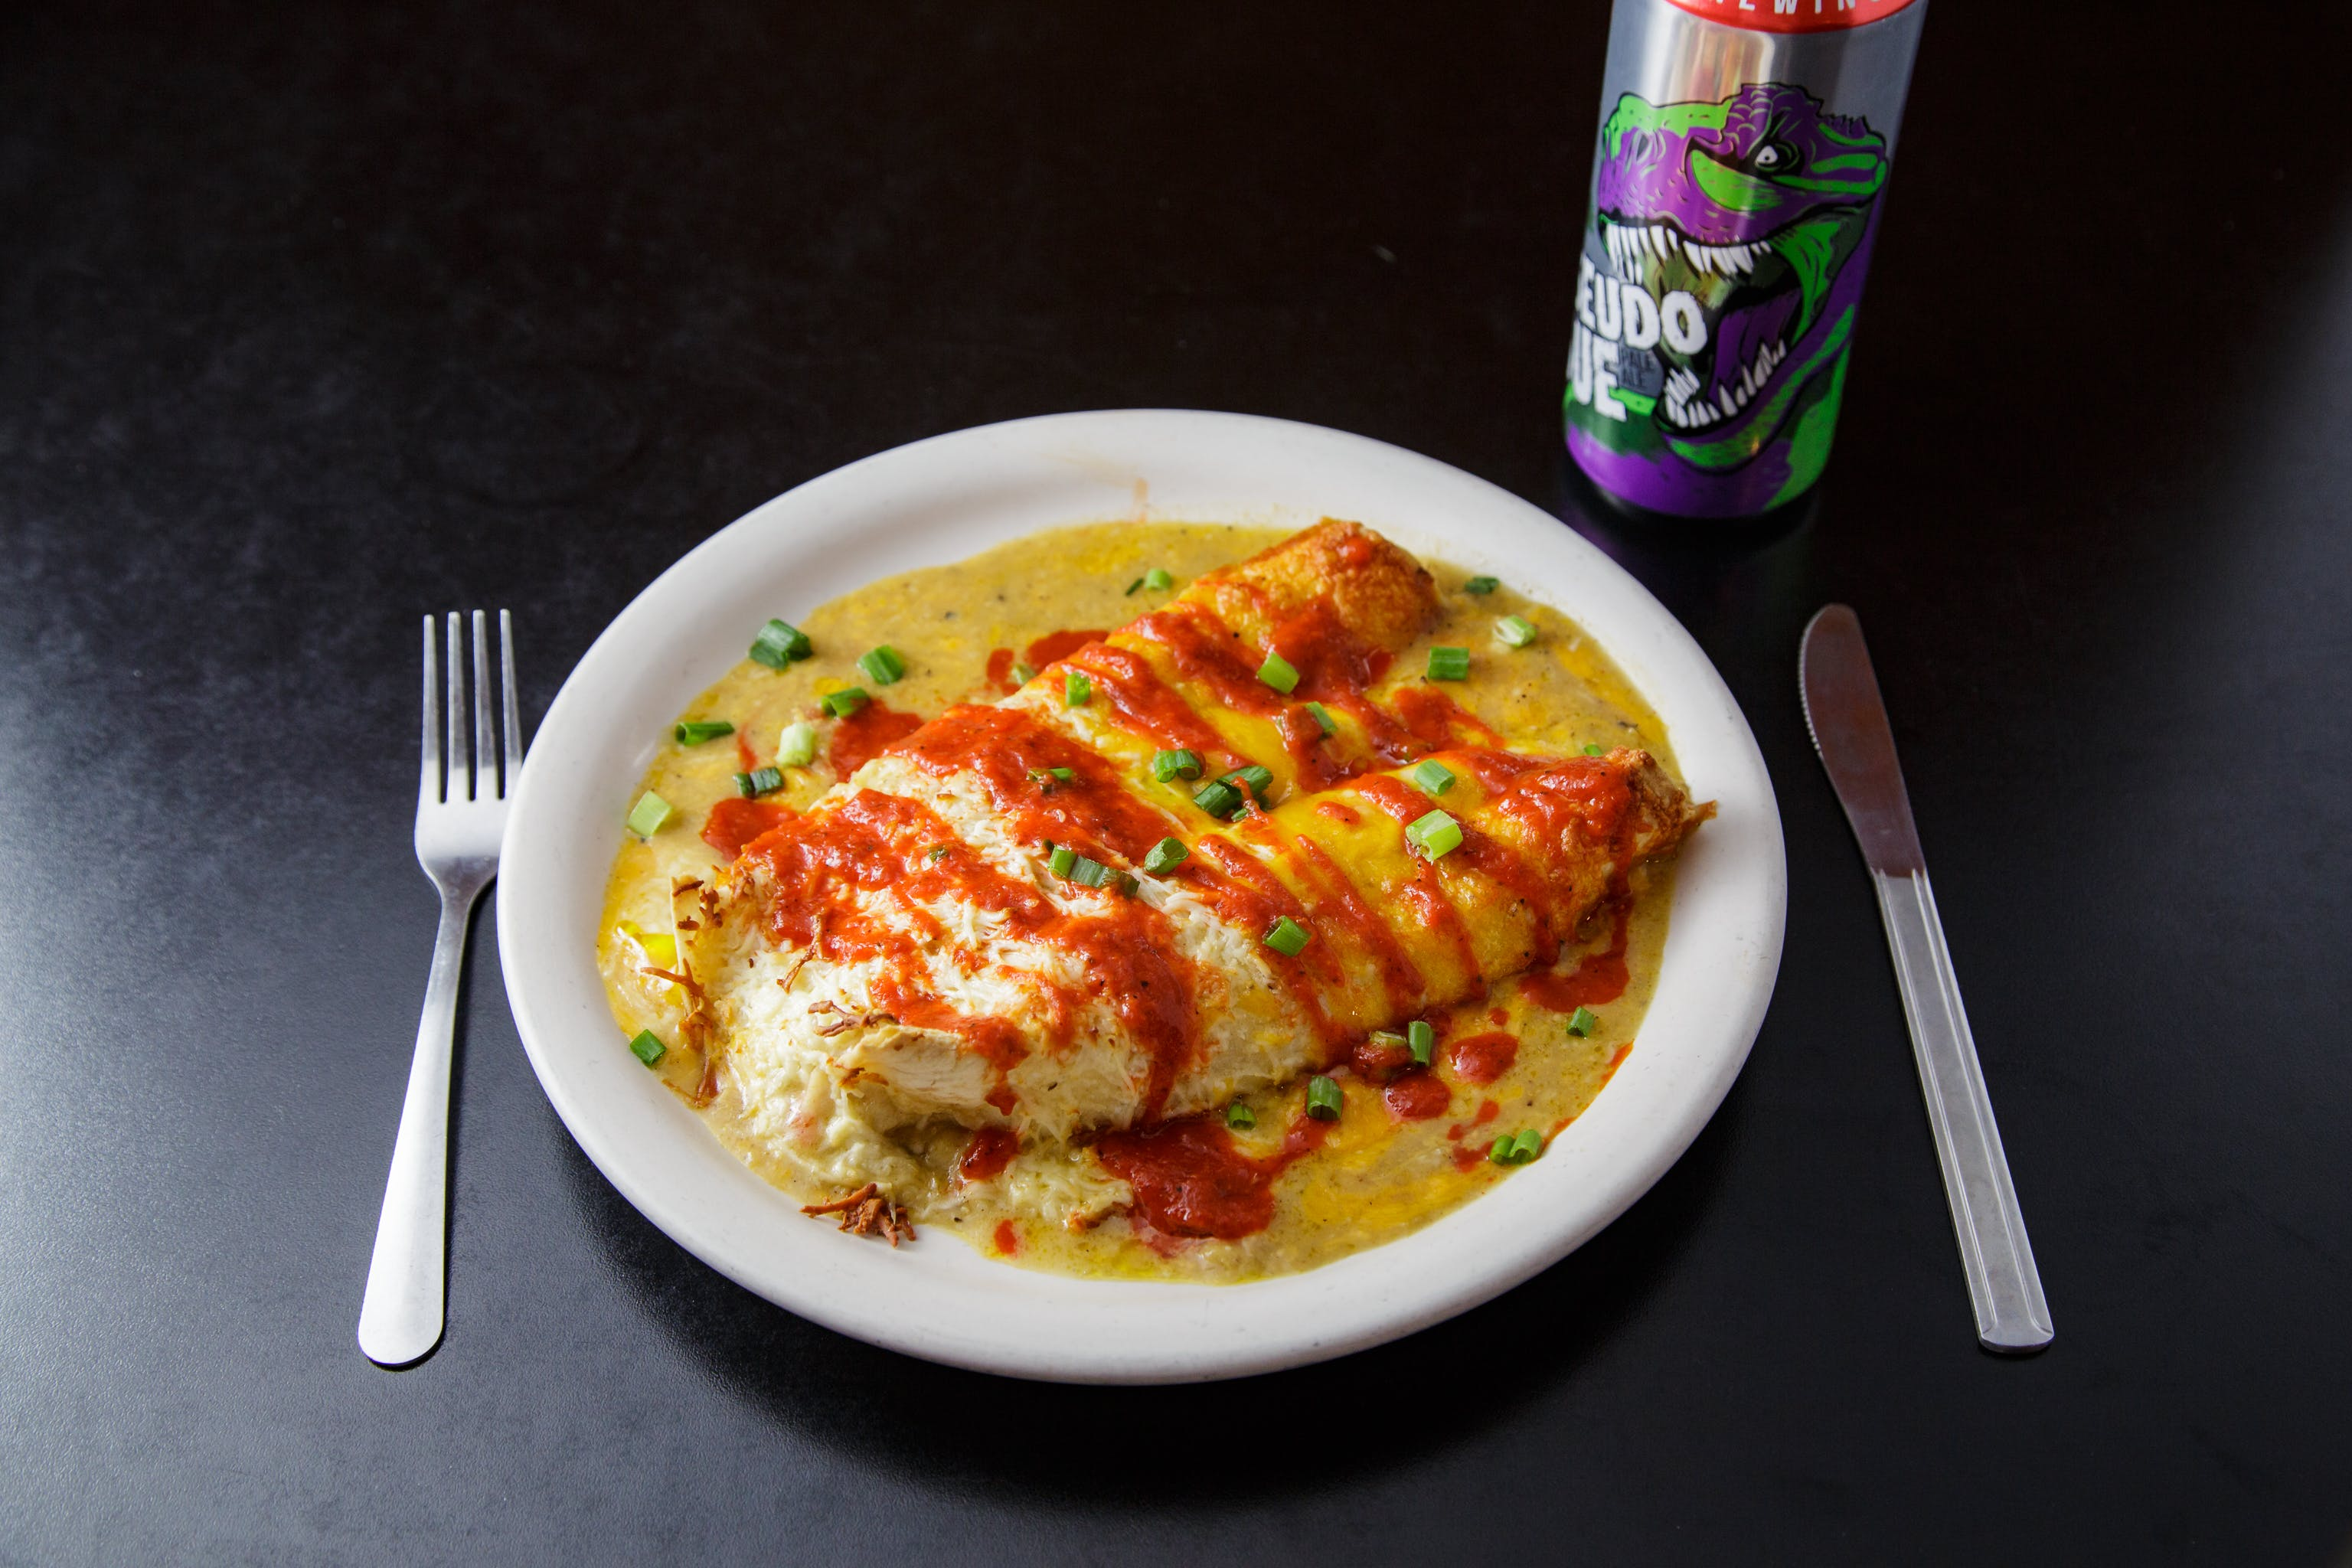 Cheese Enchilada from Burrito Drive in Madison, WI